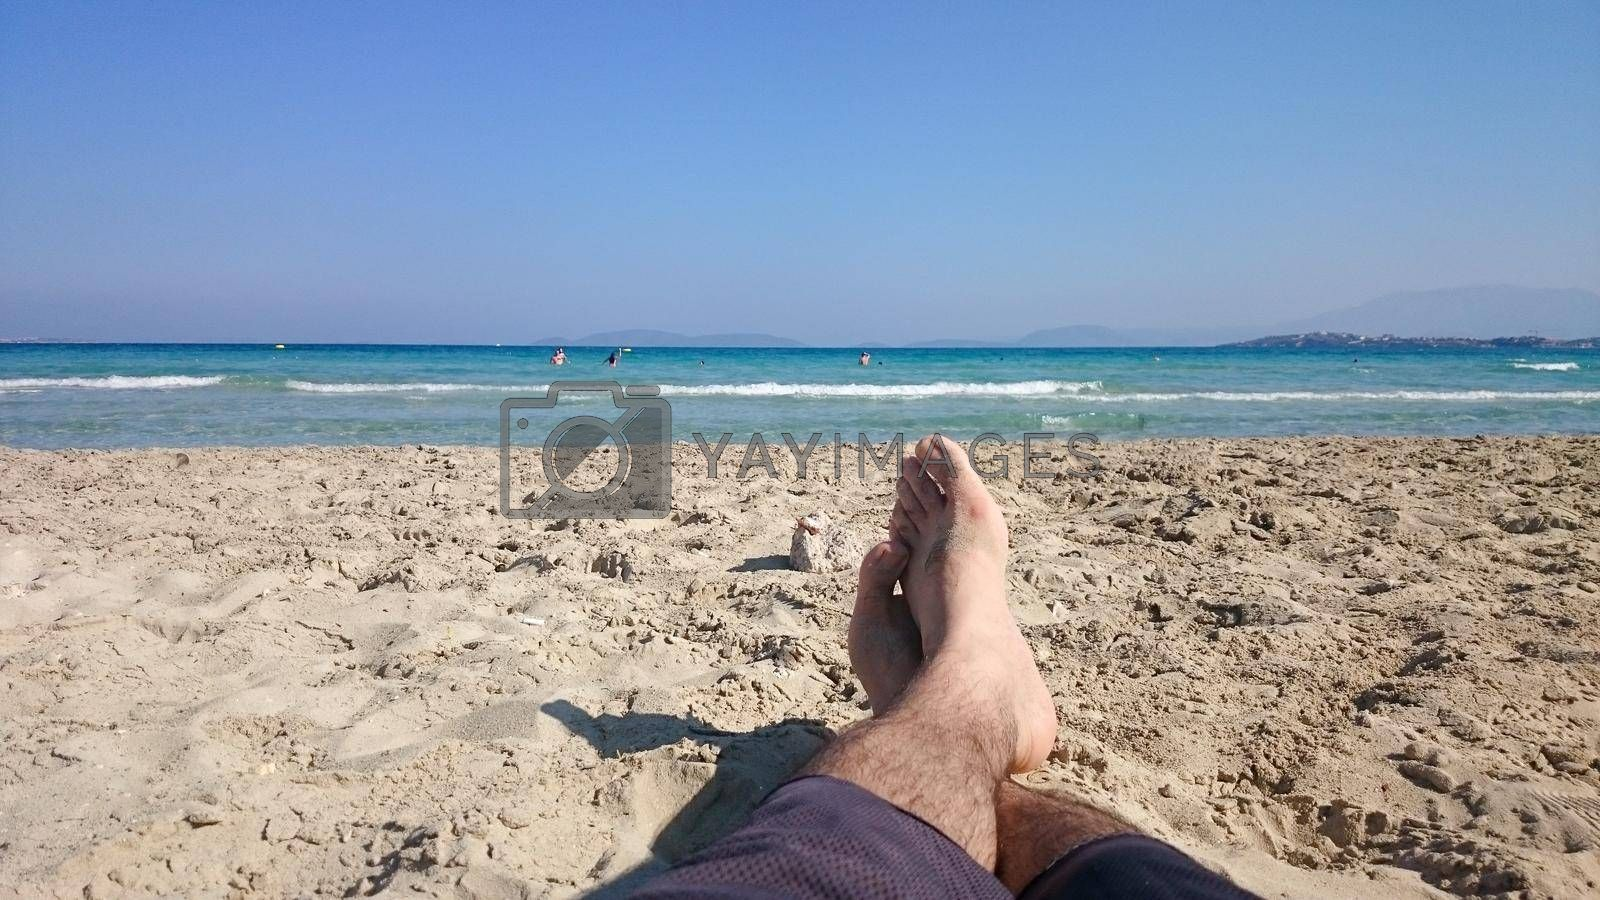 It depicts feet of a male person in a beach in a sunny day